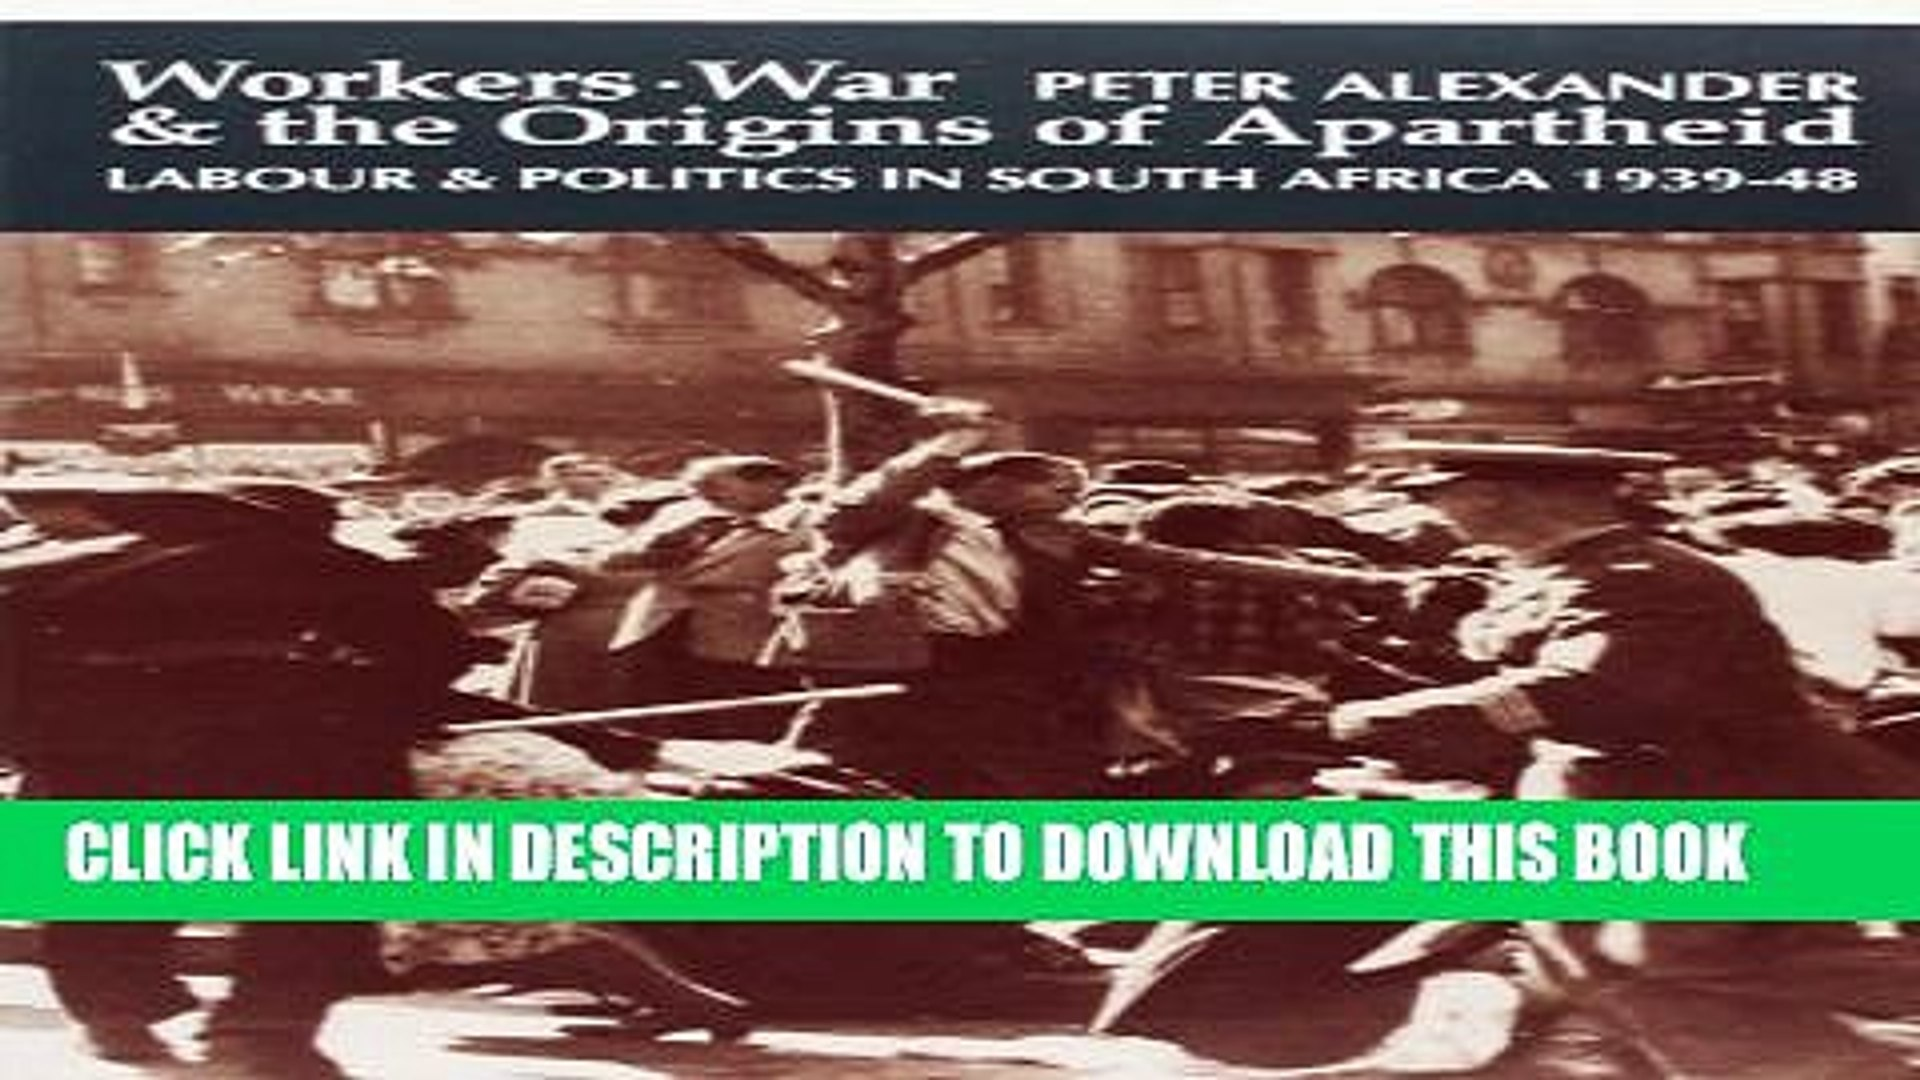 [PDF] Workers, War and the Origins of Apartheid: Labour and Politics in South Africa, 1939-48